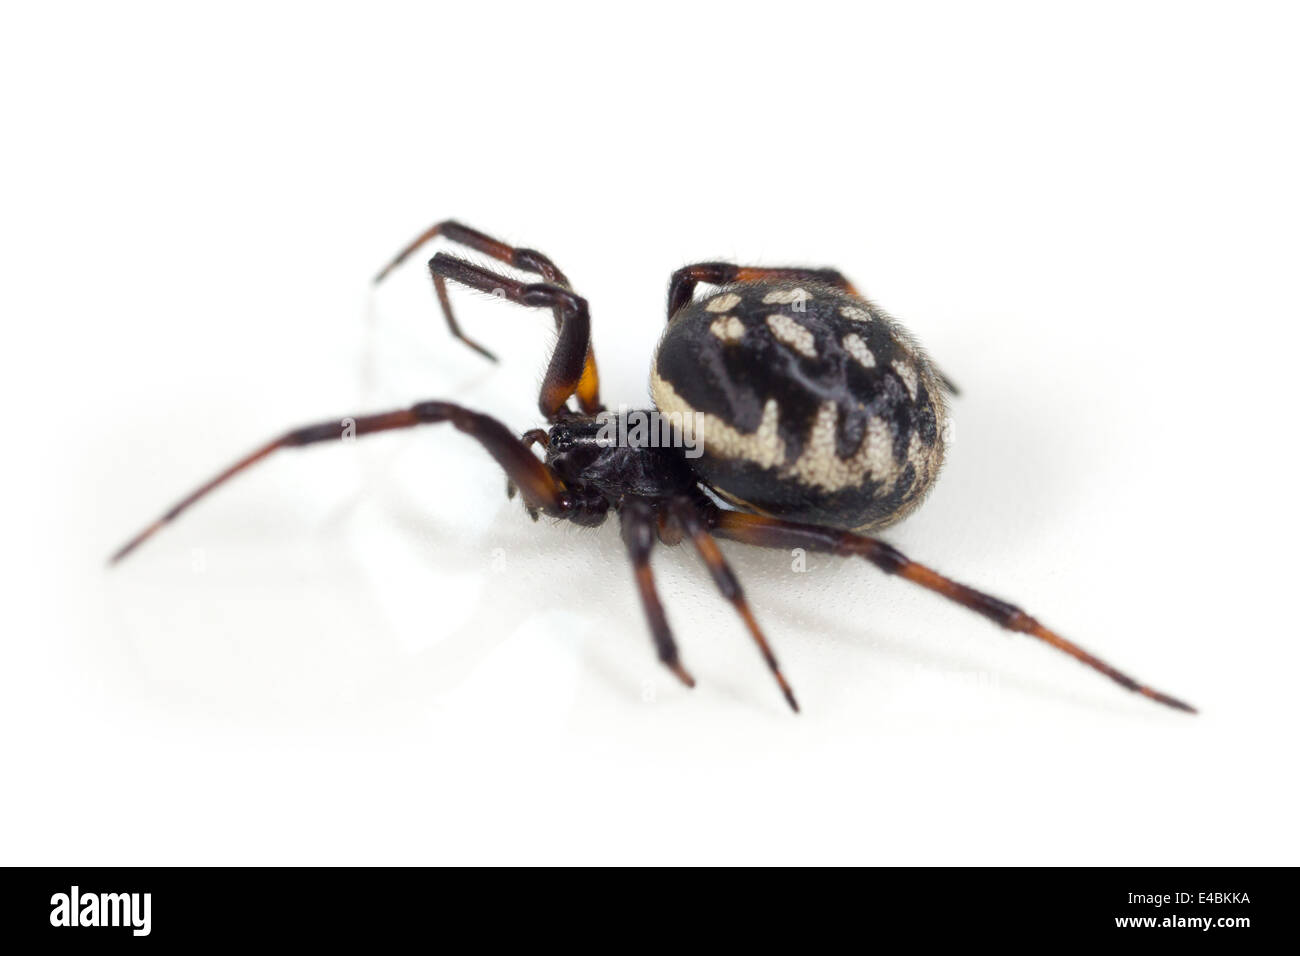 Female White-spotted false-widow (Steatoda albomaculata) spider, part of the family Theridiidae - Cobweb weavers. - Stock Image